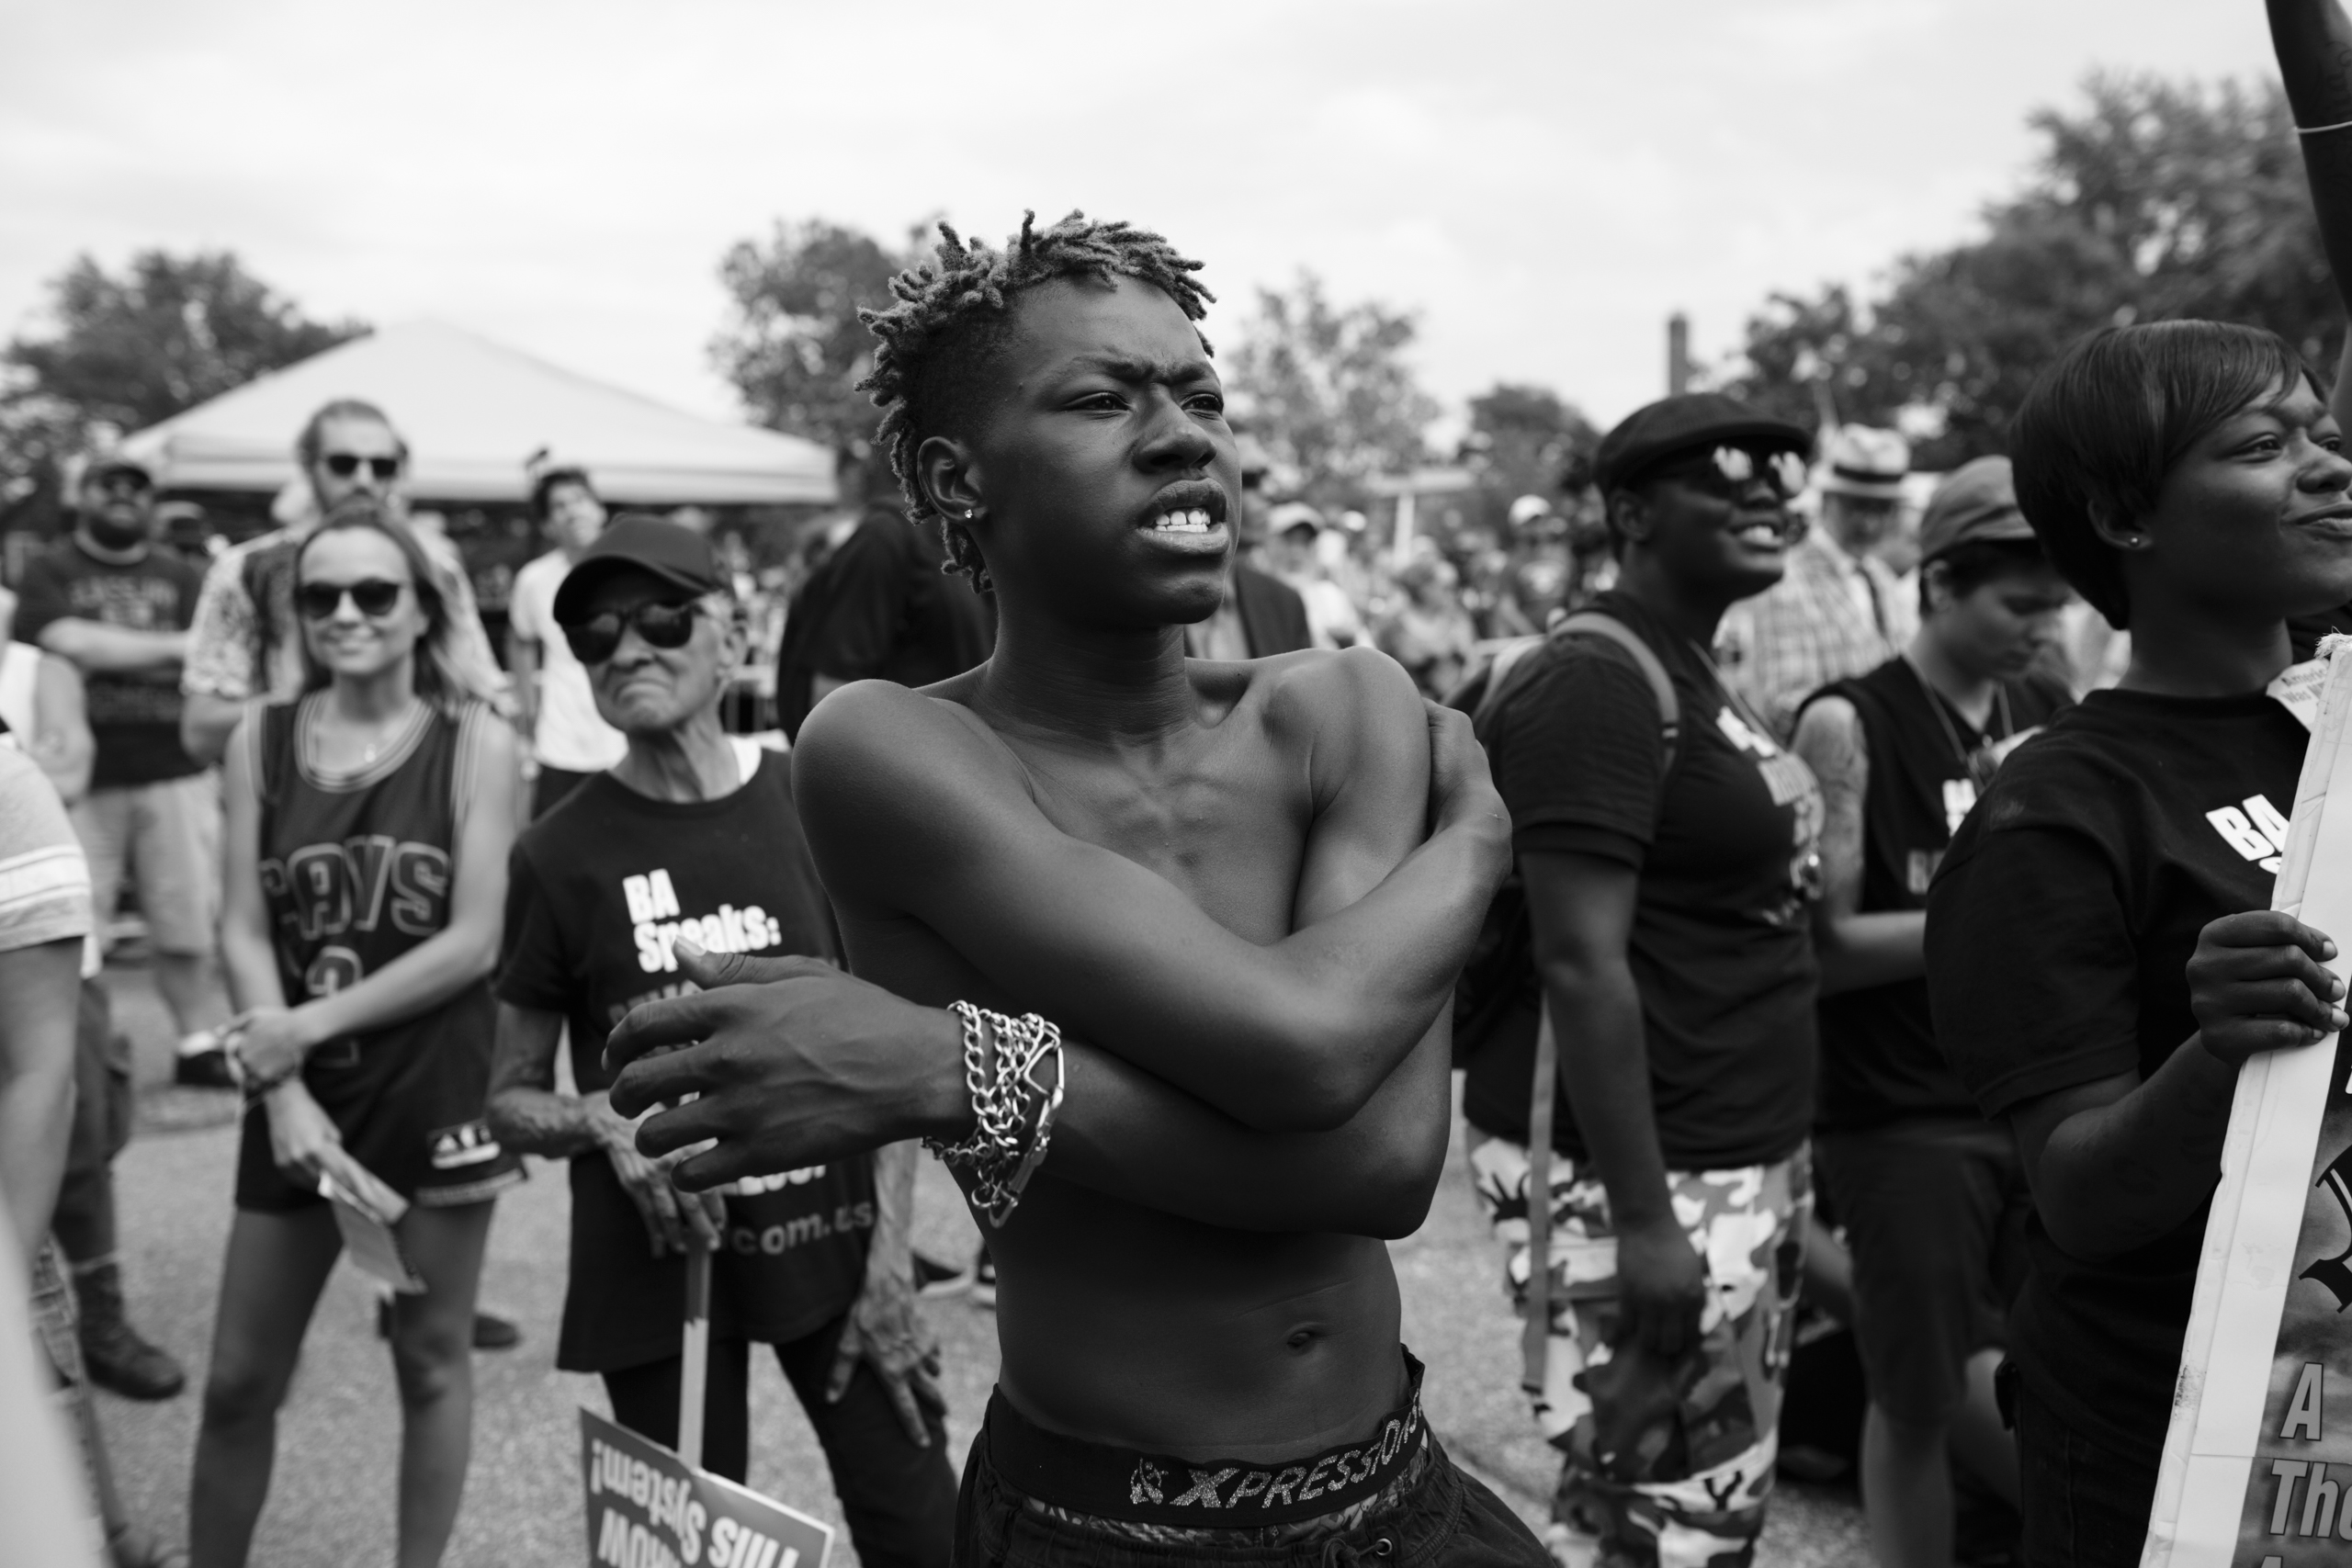 18 July 2016 - Cleveland, Ohio - REVCOM activist Kael is listening to a speech at the  End Poverty  rally in East Cleveland. The Republican National Convention kicked off on Monday and was surrounded by small and peaceful protests.